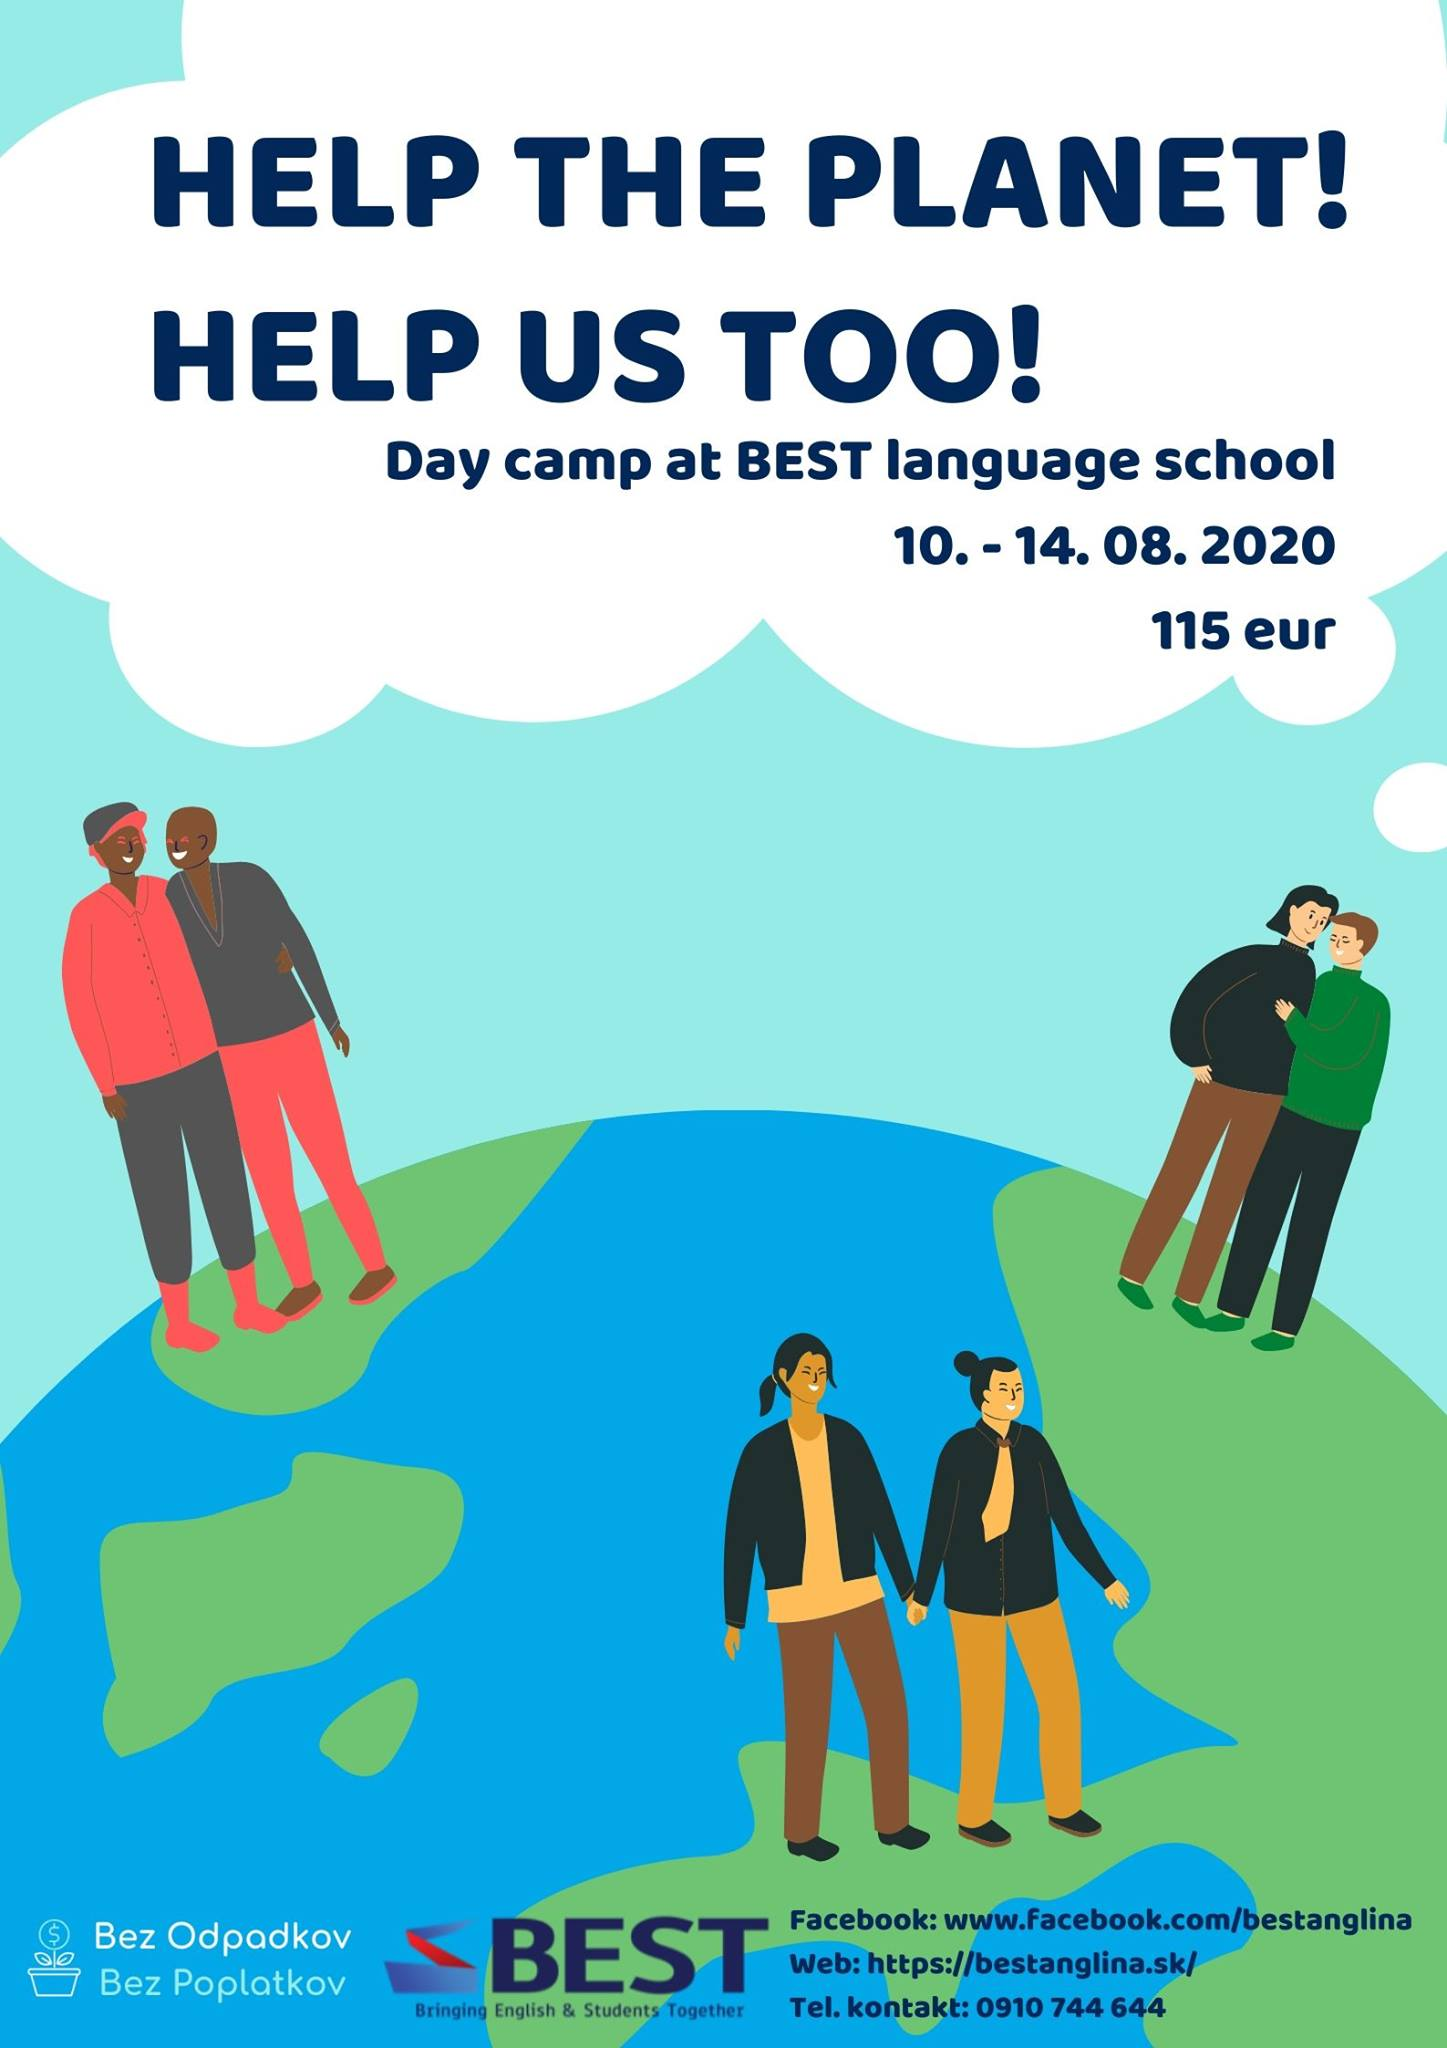 BEST English Camp 2020 - Help the planet! Help us too!